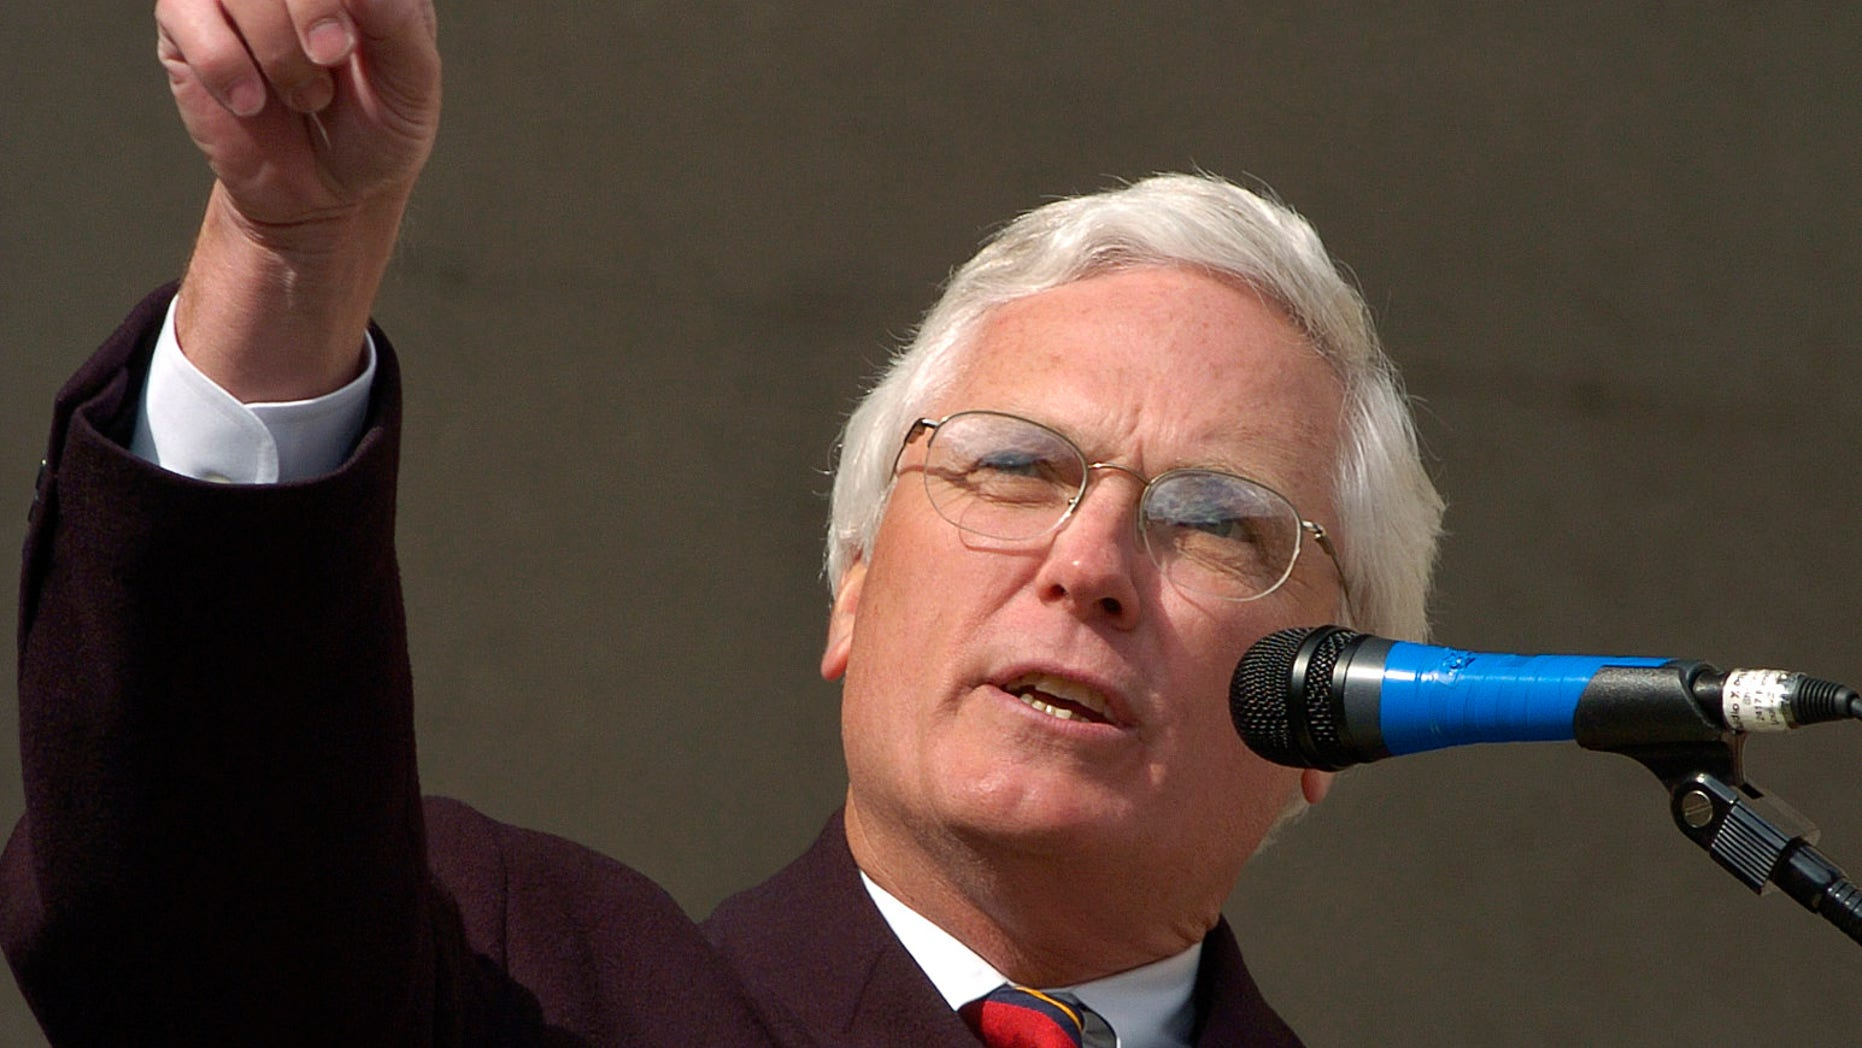 Former Jefferson County and District Court Judge Michael O'Connell gestures towards the Jefferson County Courthouse during a rally Sunday April 24, 2005 at  in Louisville, Ky. The rally was held to counter the Justice Sunday rallies held today. (AP Photo/Timothy D. Easley)